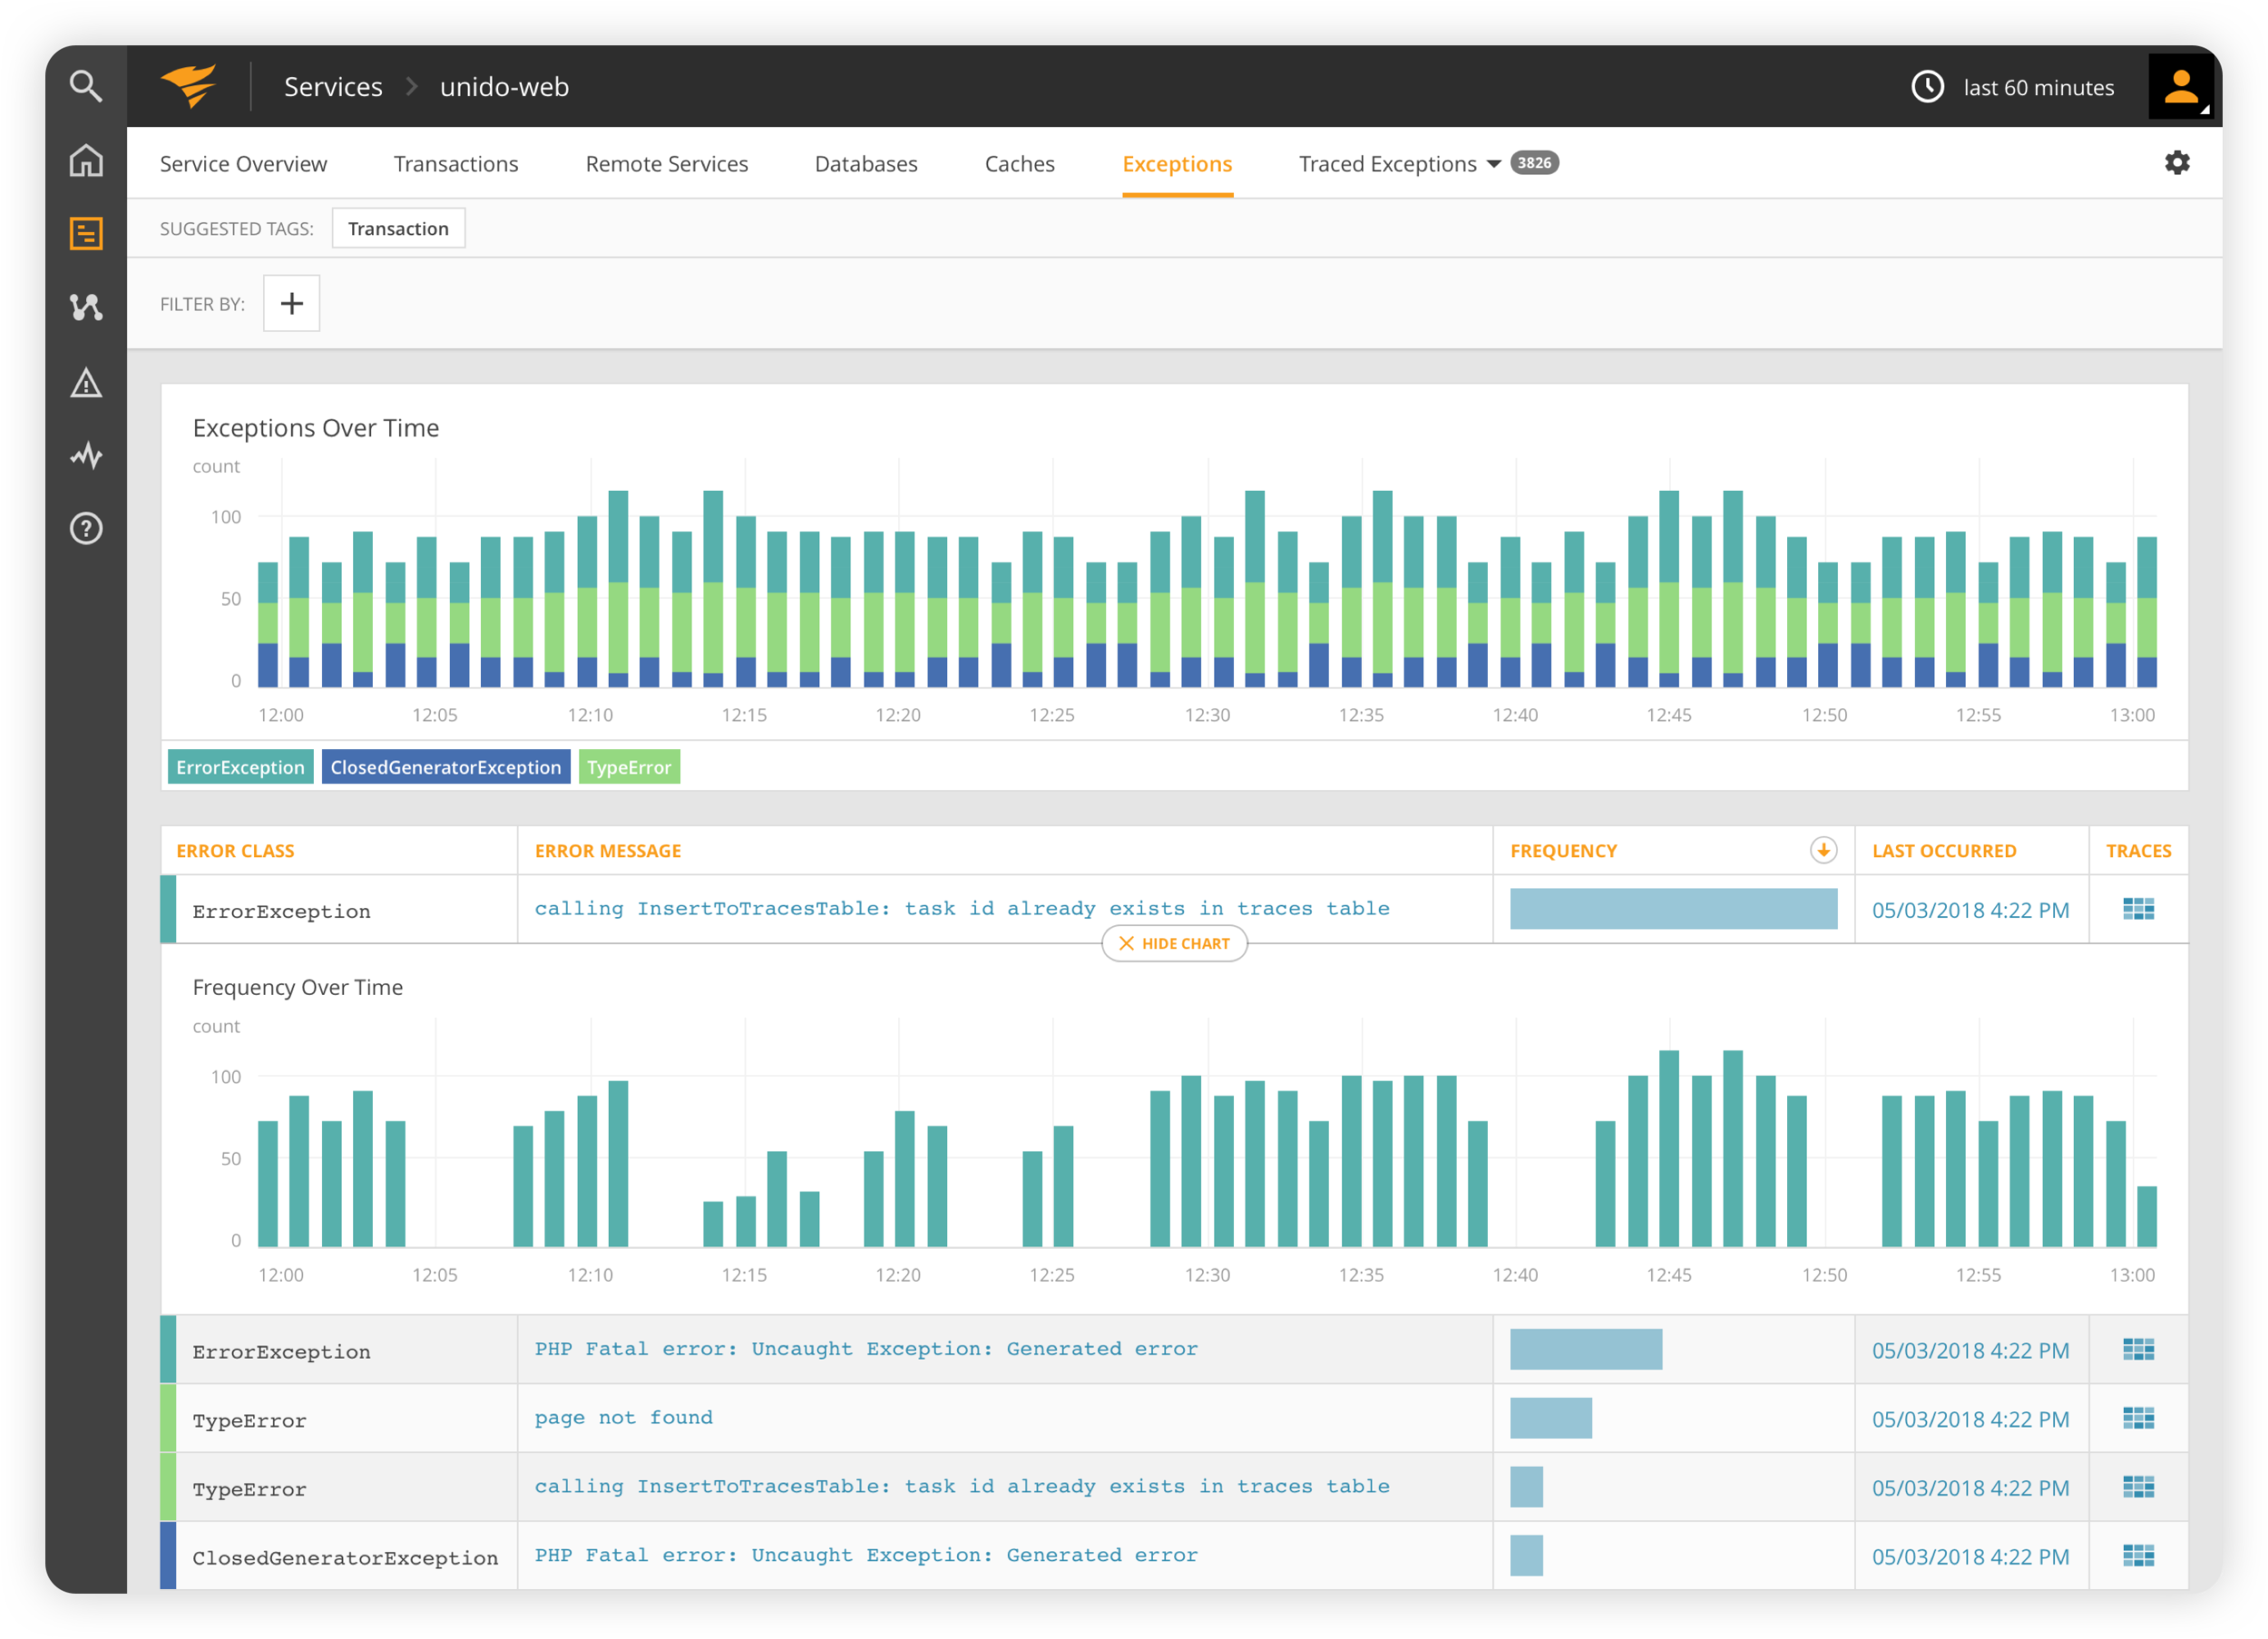 SolarWinds Cloud - UI/UX & Design Systems for Enterprise Monitoring SaaS Products